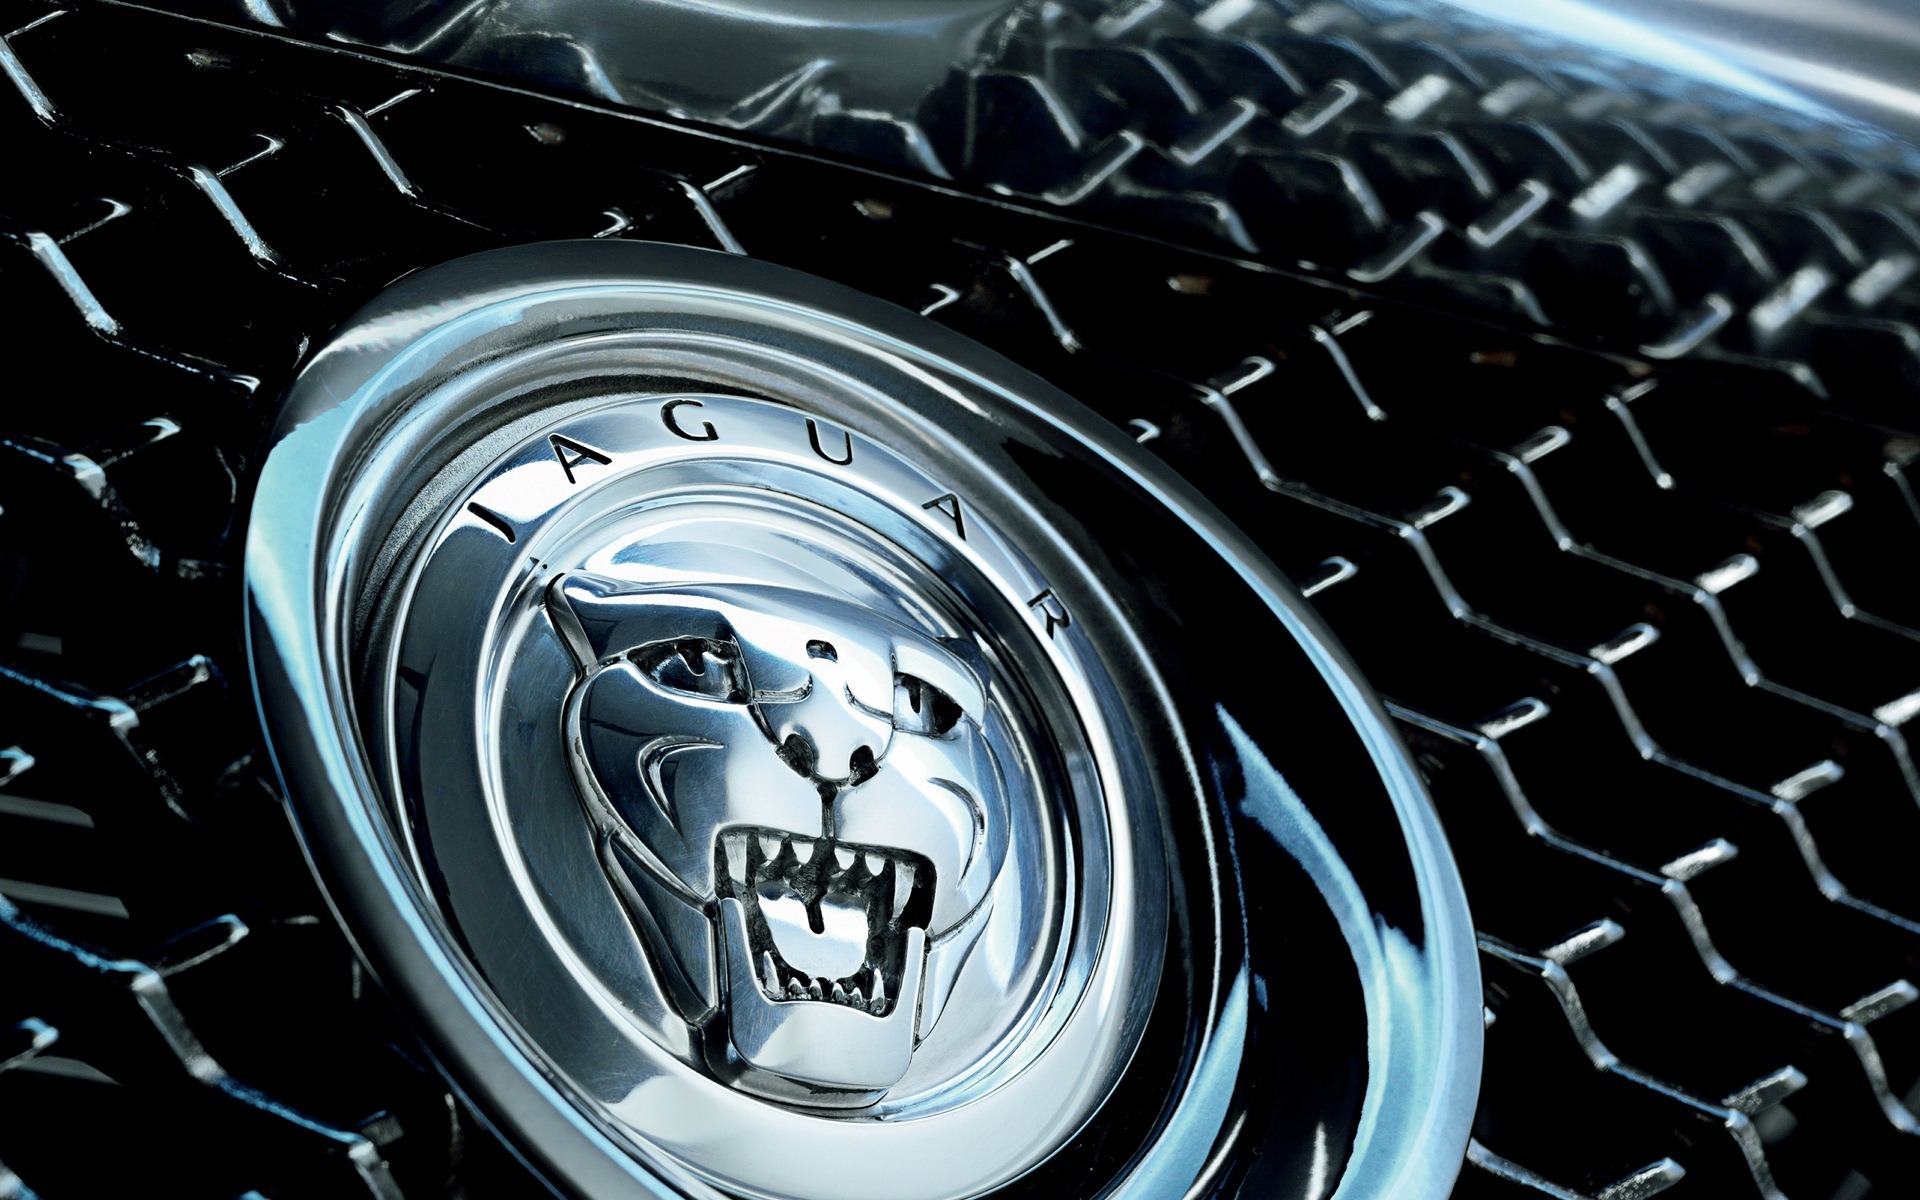 jaguar widescreen computer background 1278